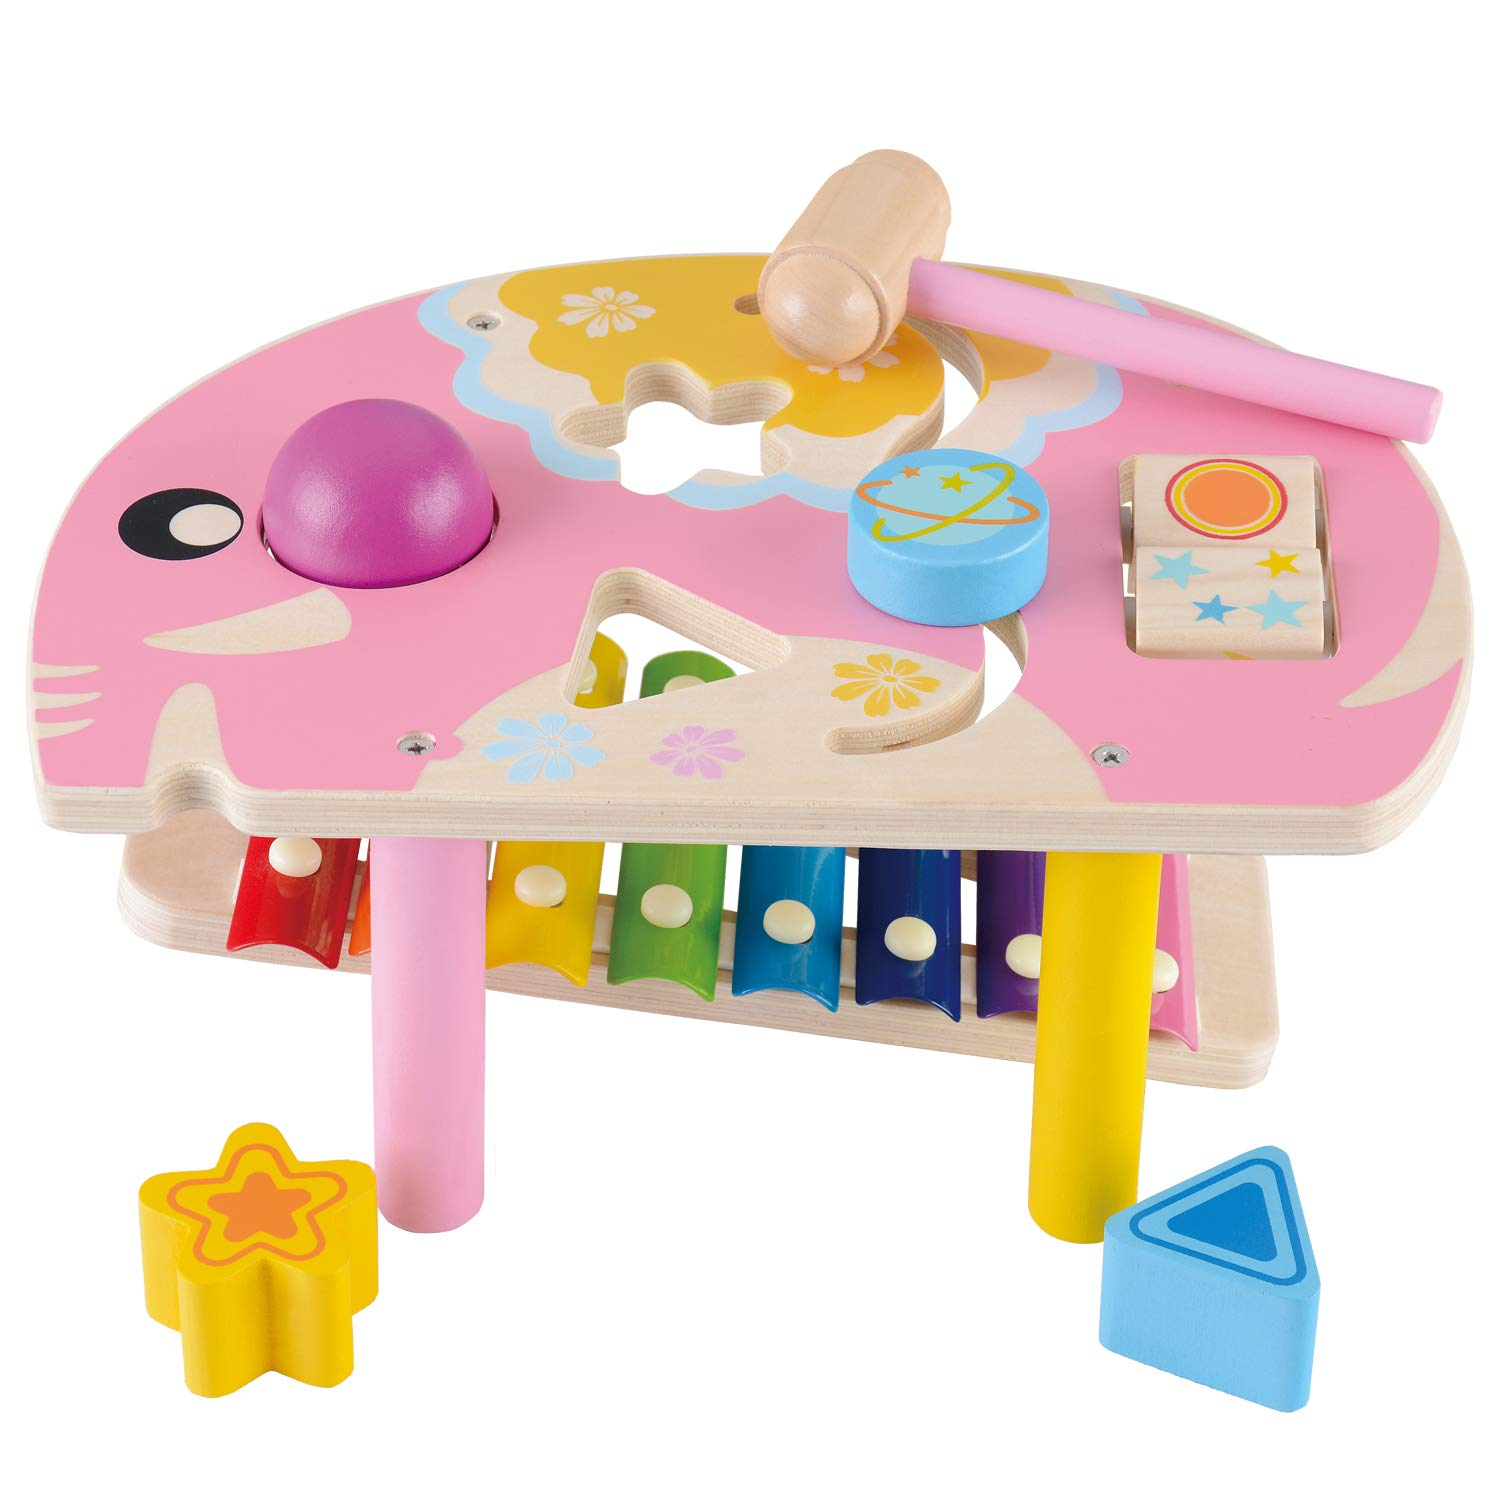 Best Gift for Toddler Age 1 and Up Pattern Recognition Shape sorter Elephant WOOKA 3 in 1 Wooden Educational Toys Pound /& Tap Bench with Slide Out Xylophone